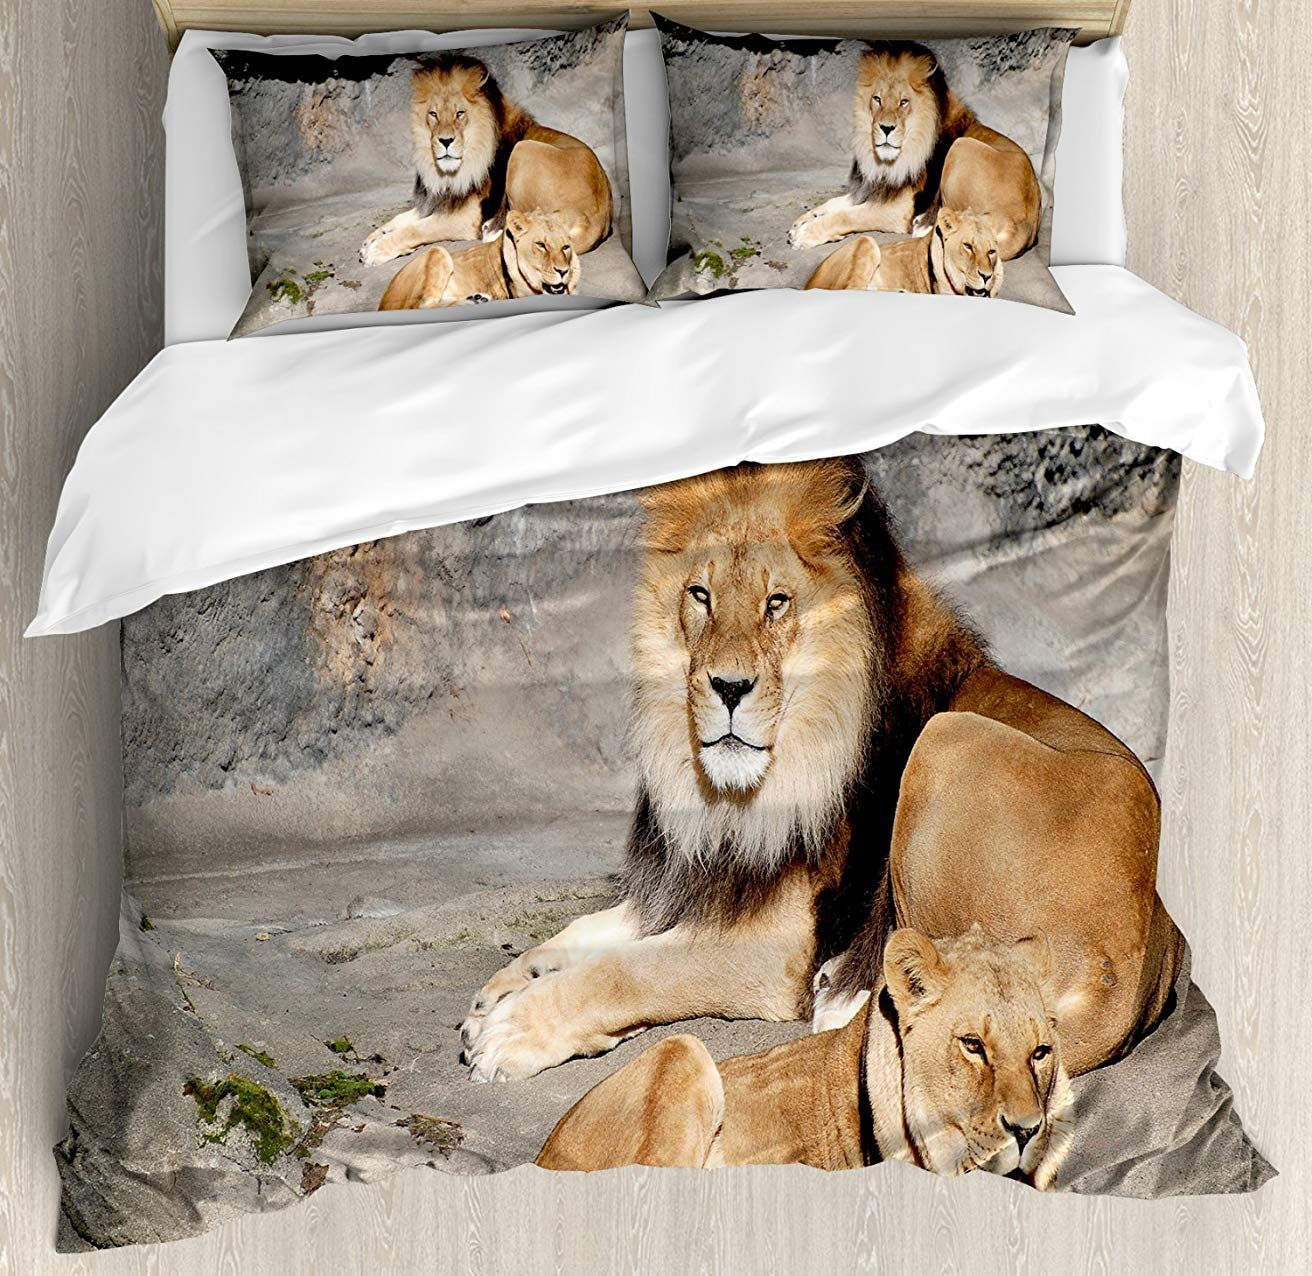 60a73de6936b Zoo Bet Set 4pcs Bedding Sets Duvet Cover Flat Sheet No Comforter with  Decorative Pillow Cases Queen Size for Kids Adults-Male and Female Lions  Basking in ...